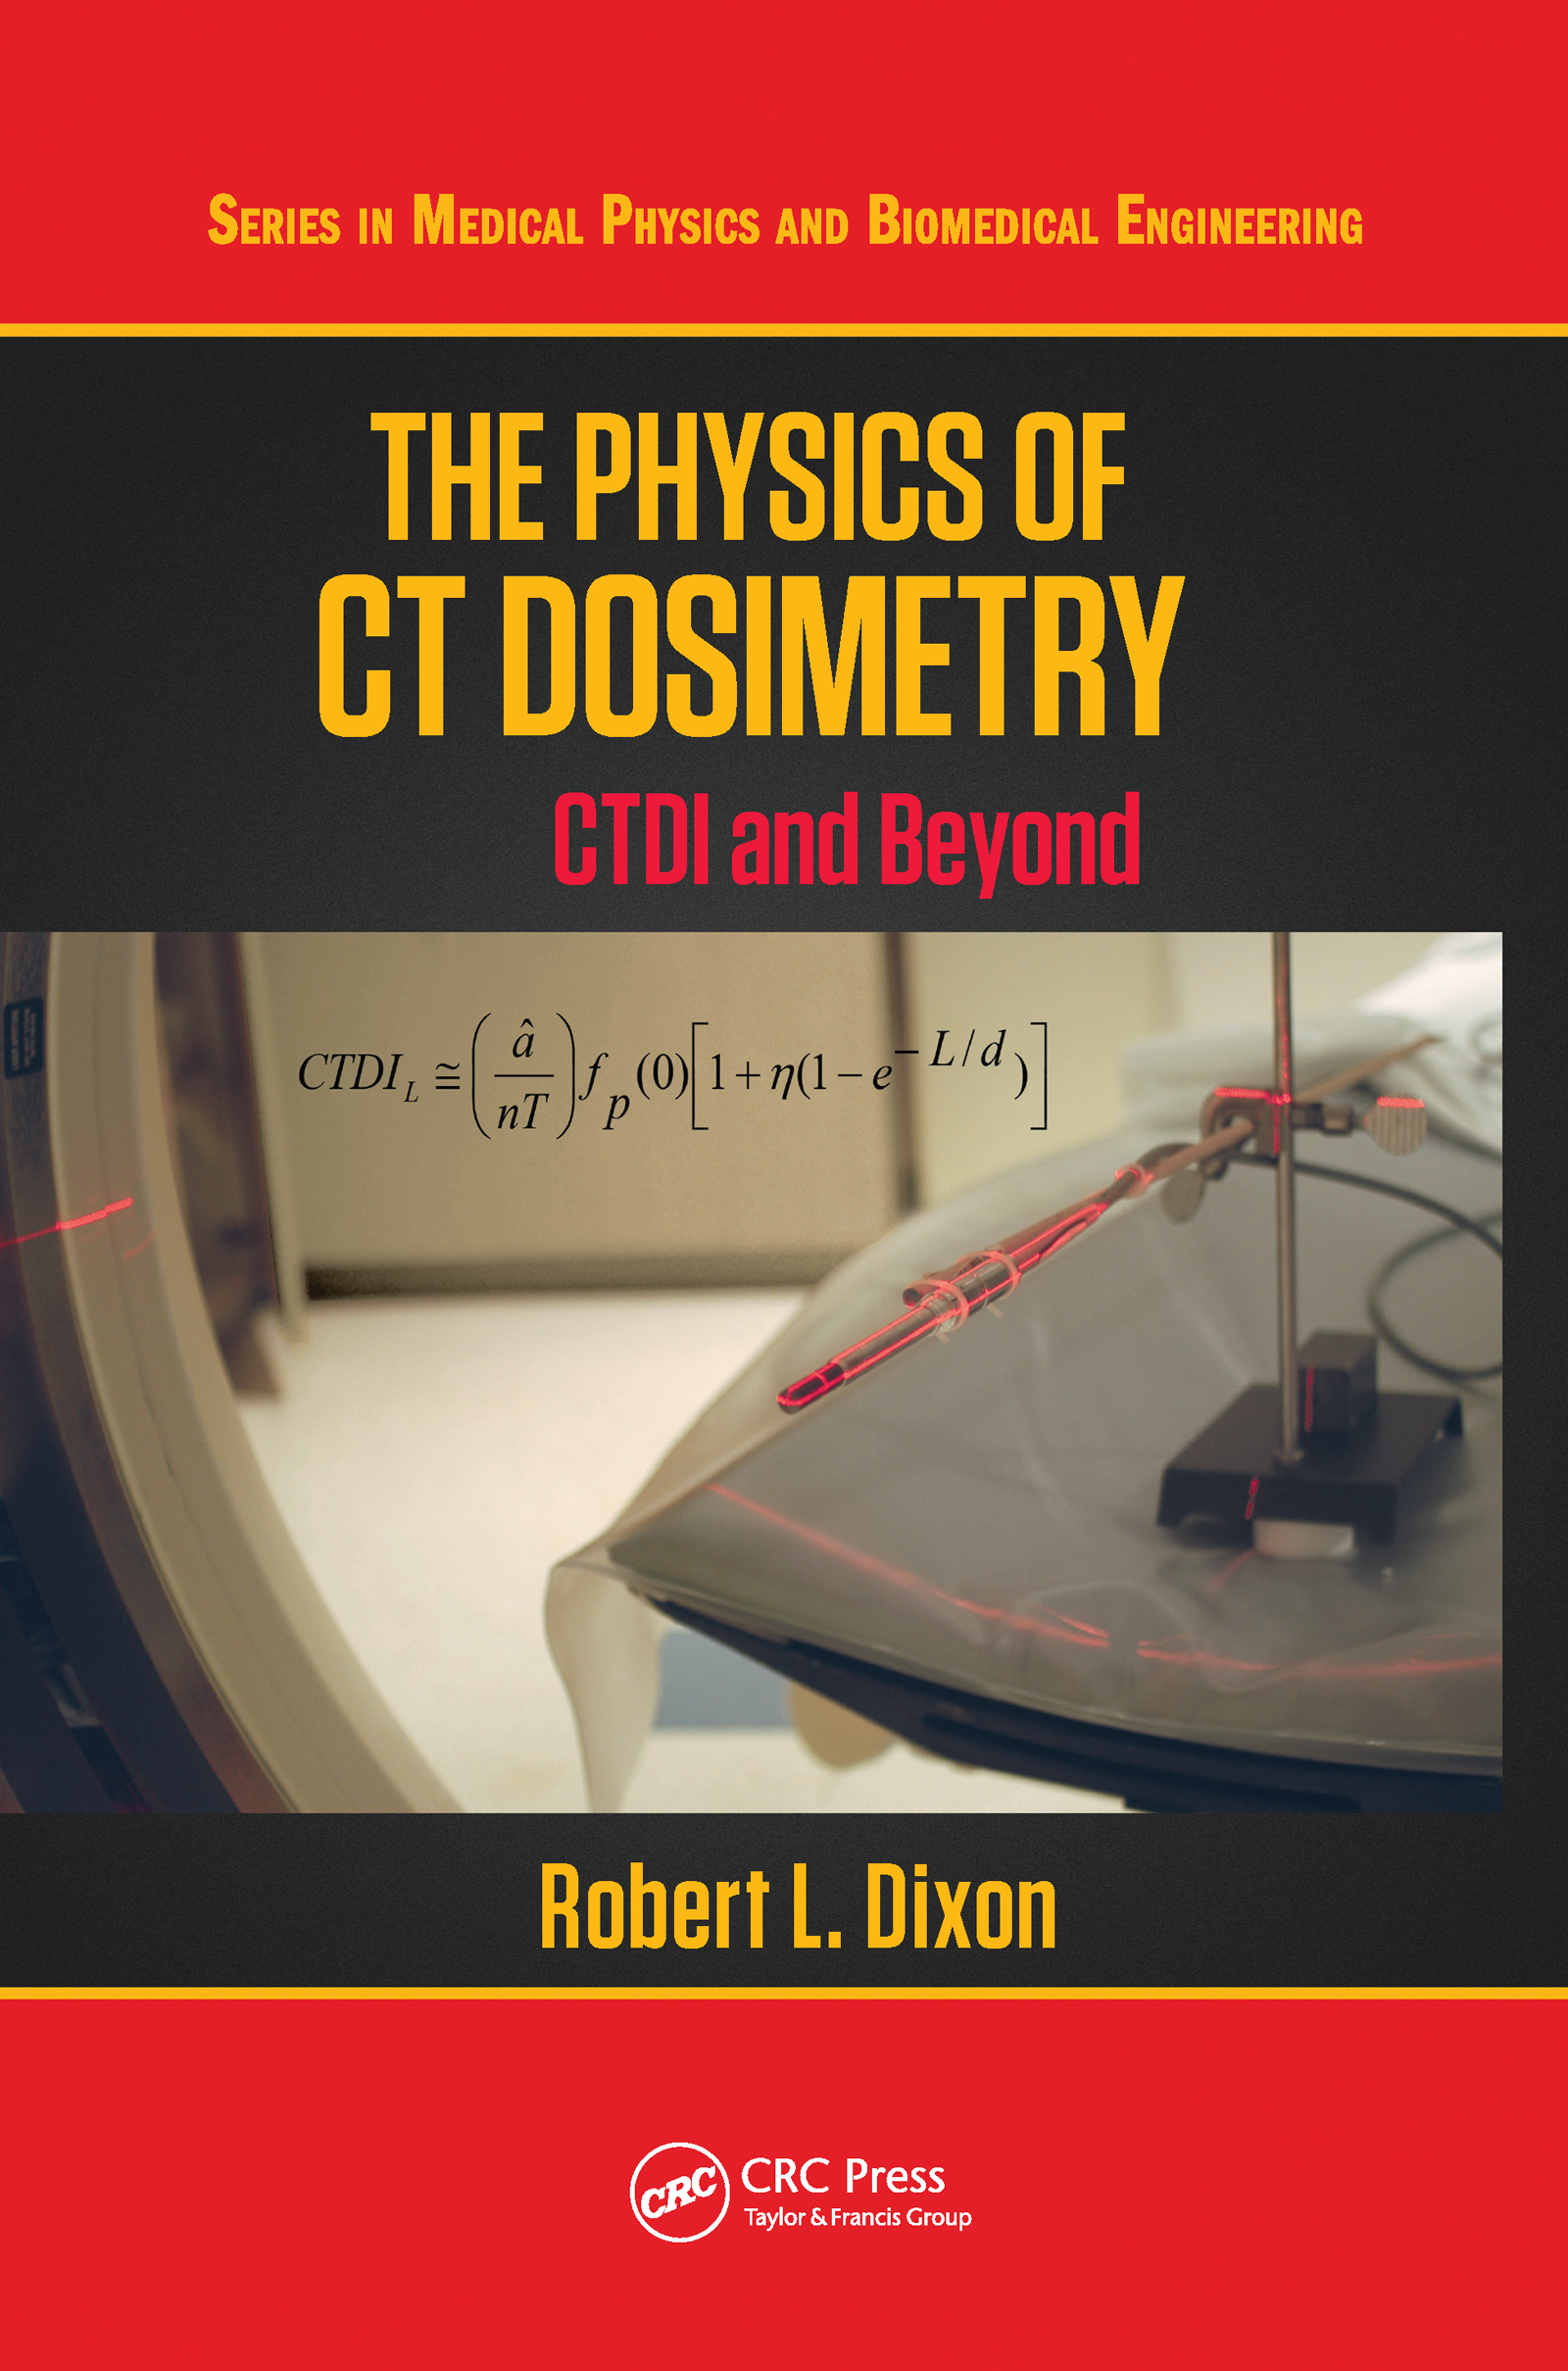 The Physics of CT Dosimetry